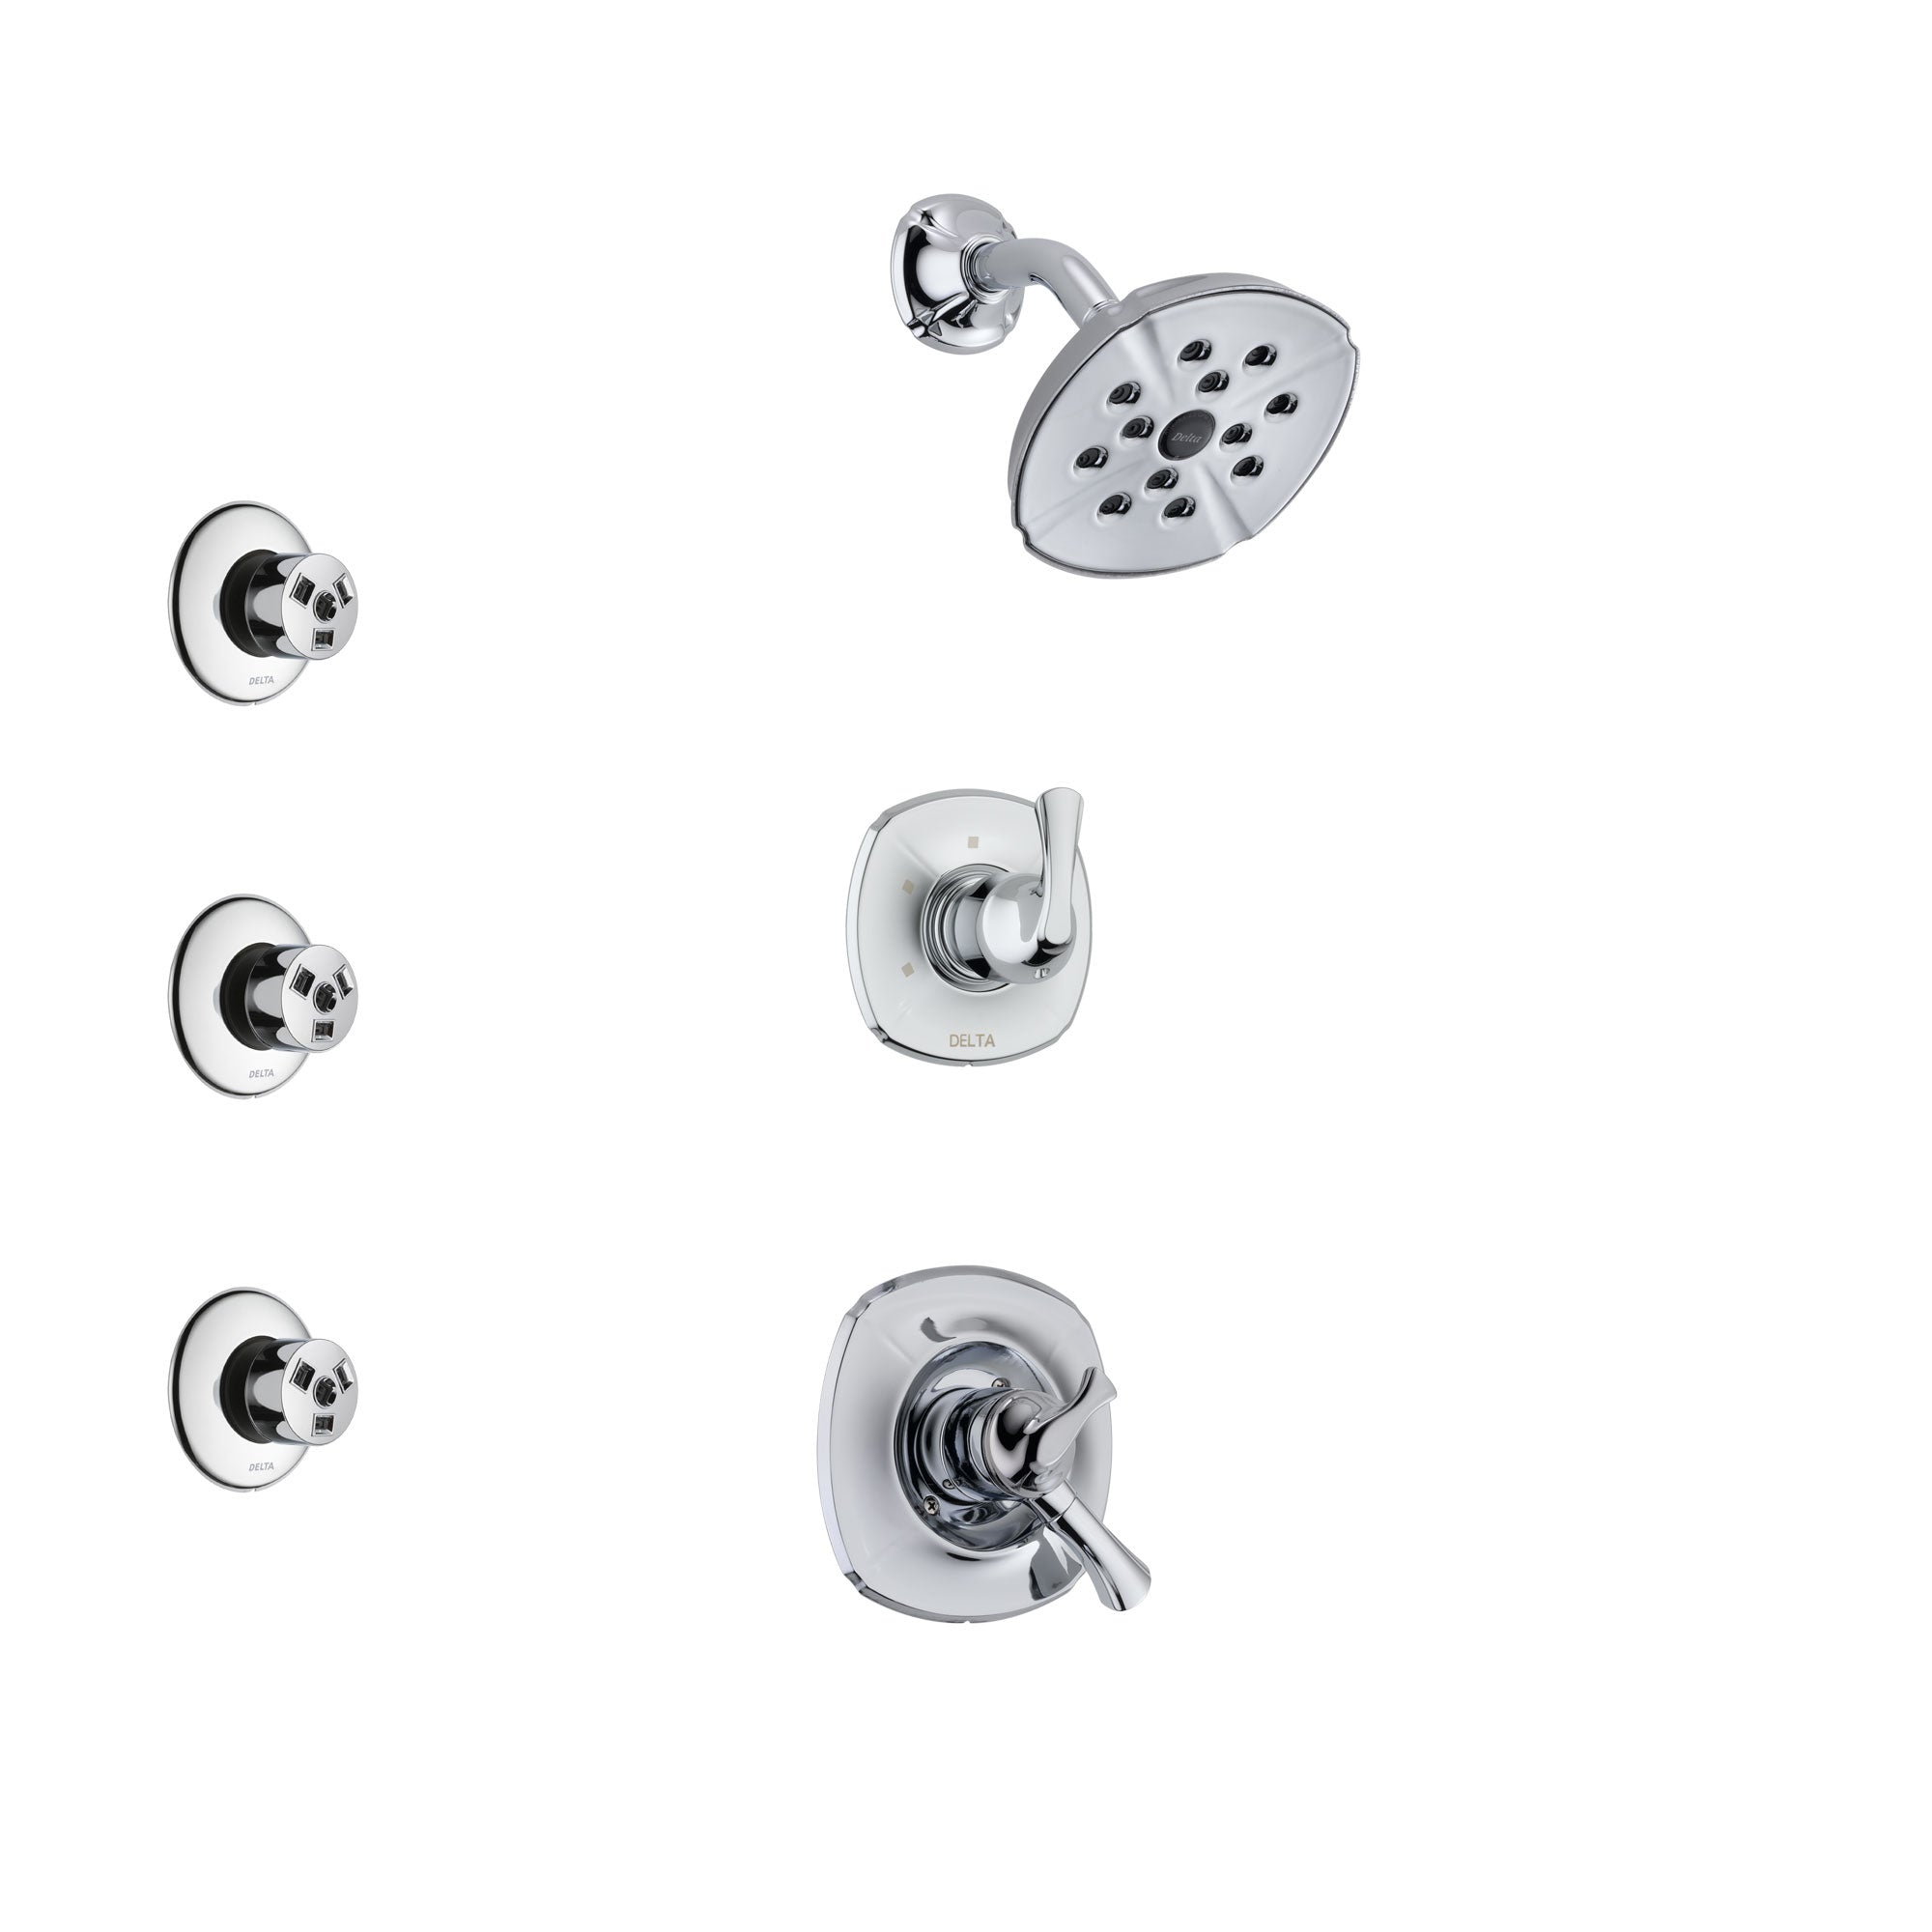 Delta Addison Chrome Finish Shower System with Dual Control Handle, 3-Setting Diverter, Showerhead, and 3 Body Sprays SS172922